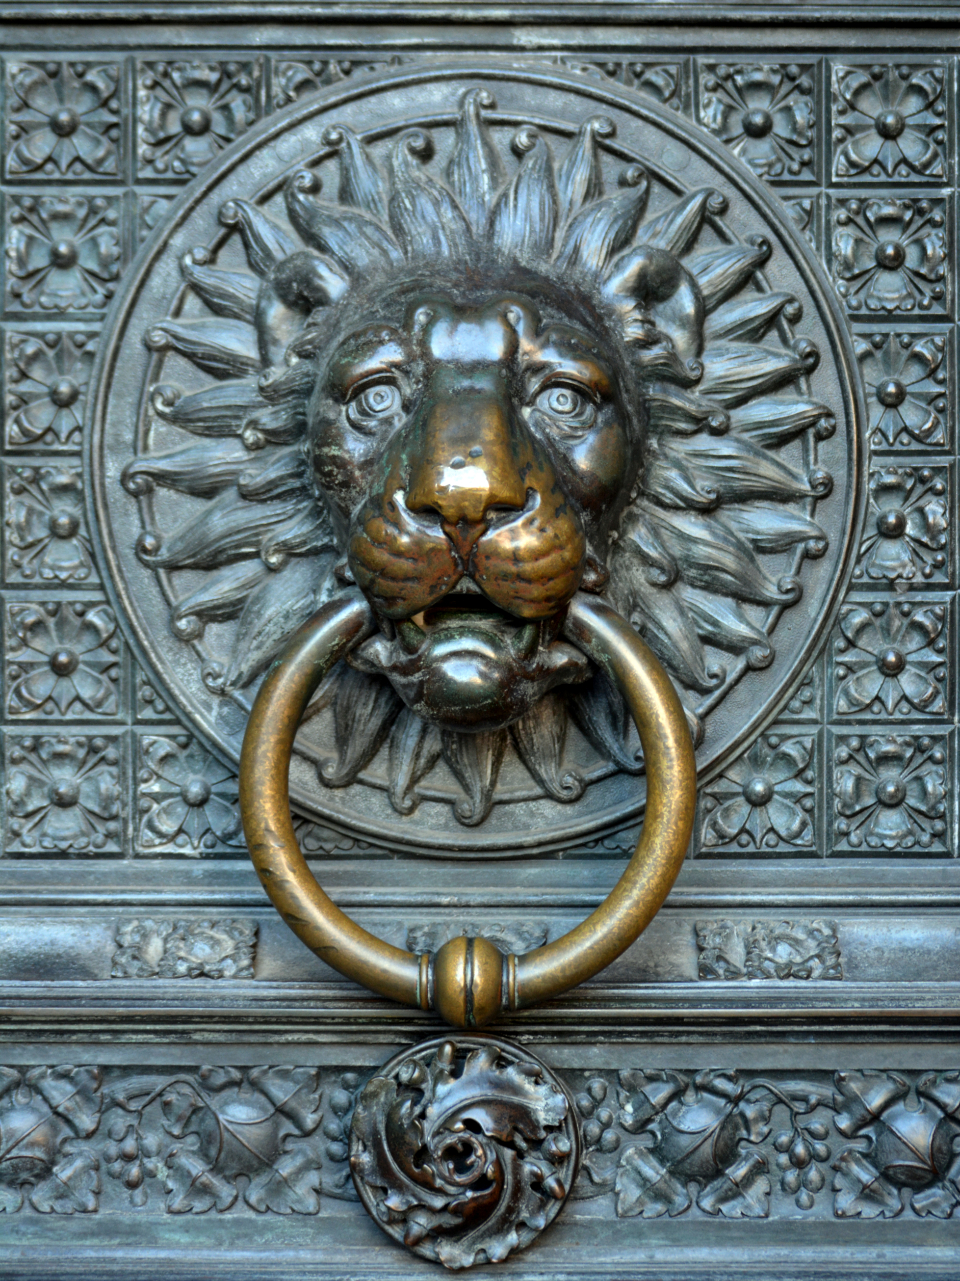 ornate close up keyhole doorknob design old antique metal brass decoration architecture door knocker exterior vintage bronze lion object